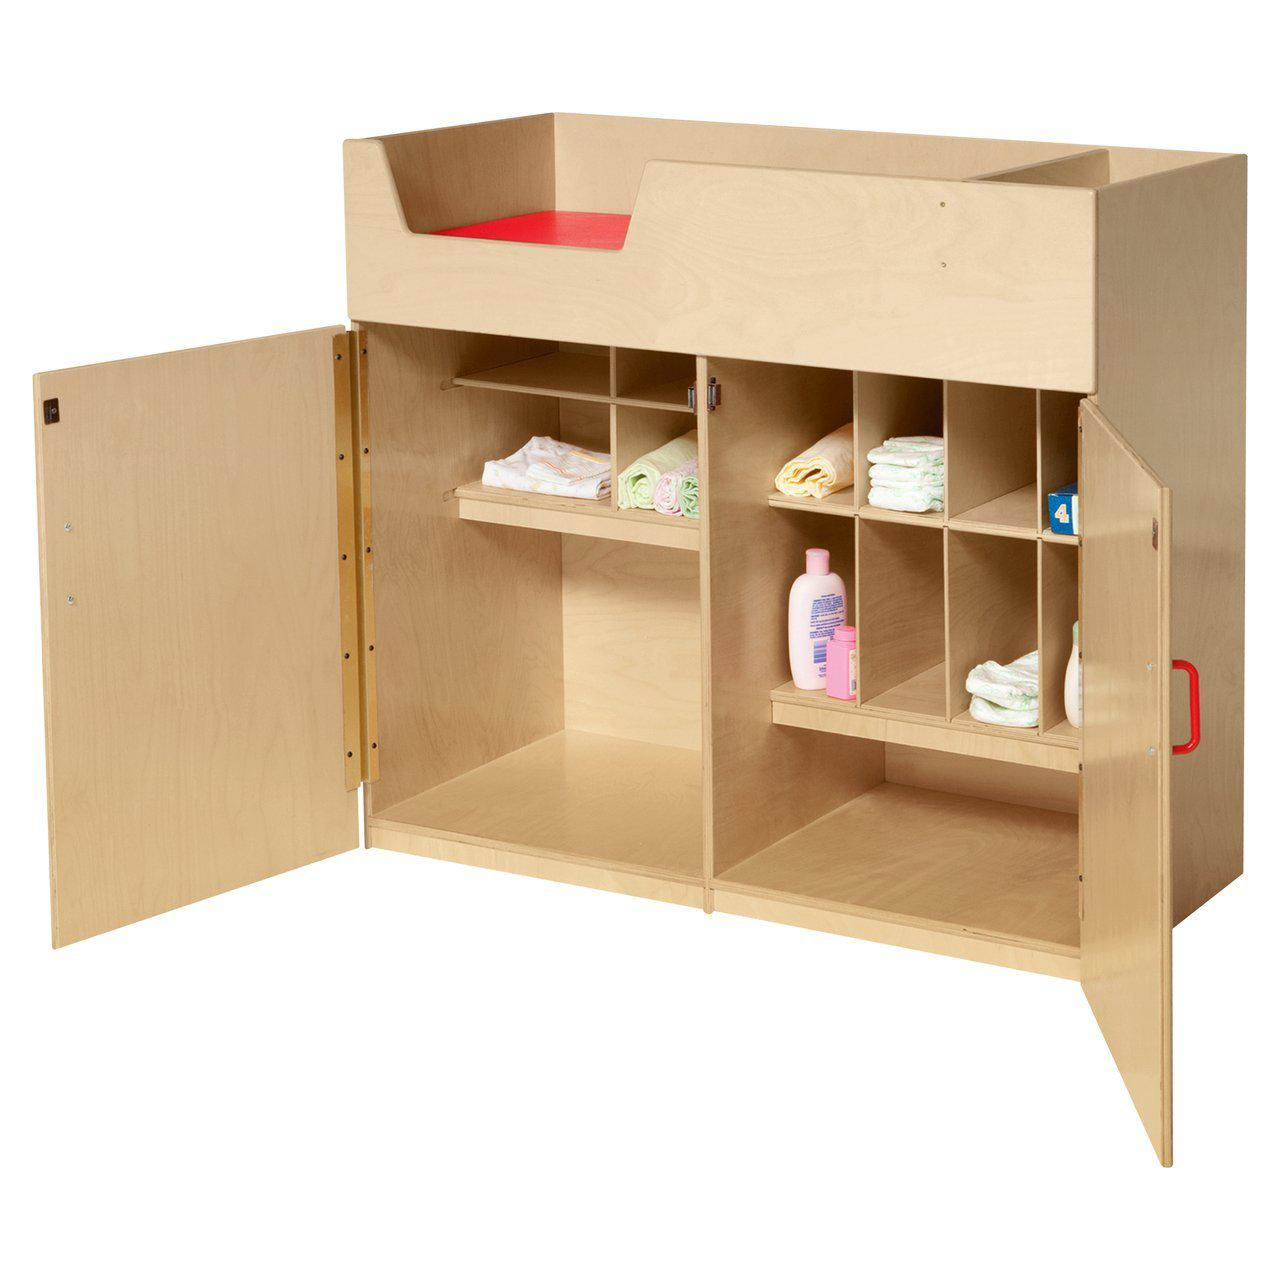 Wood Designs Deluxe Infant Care Center-Pre-School Furniture-